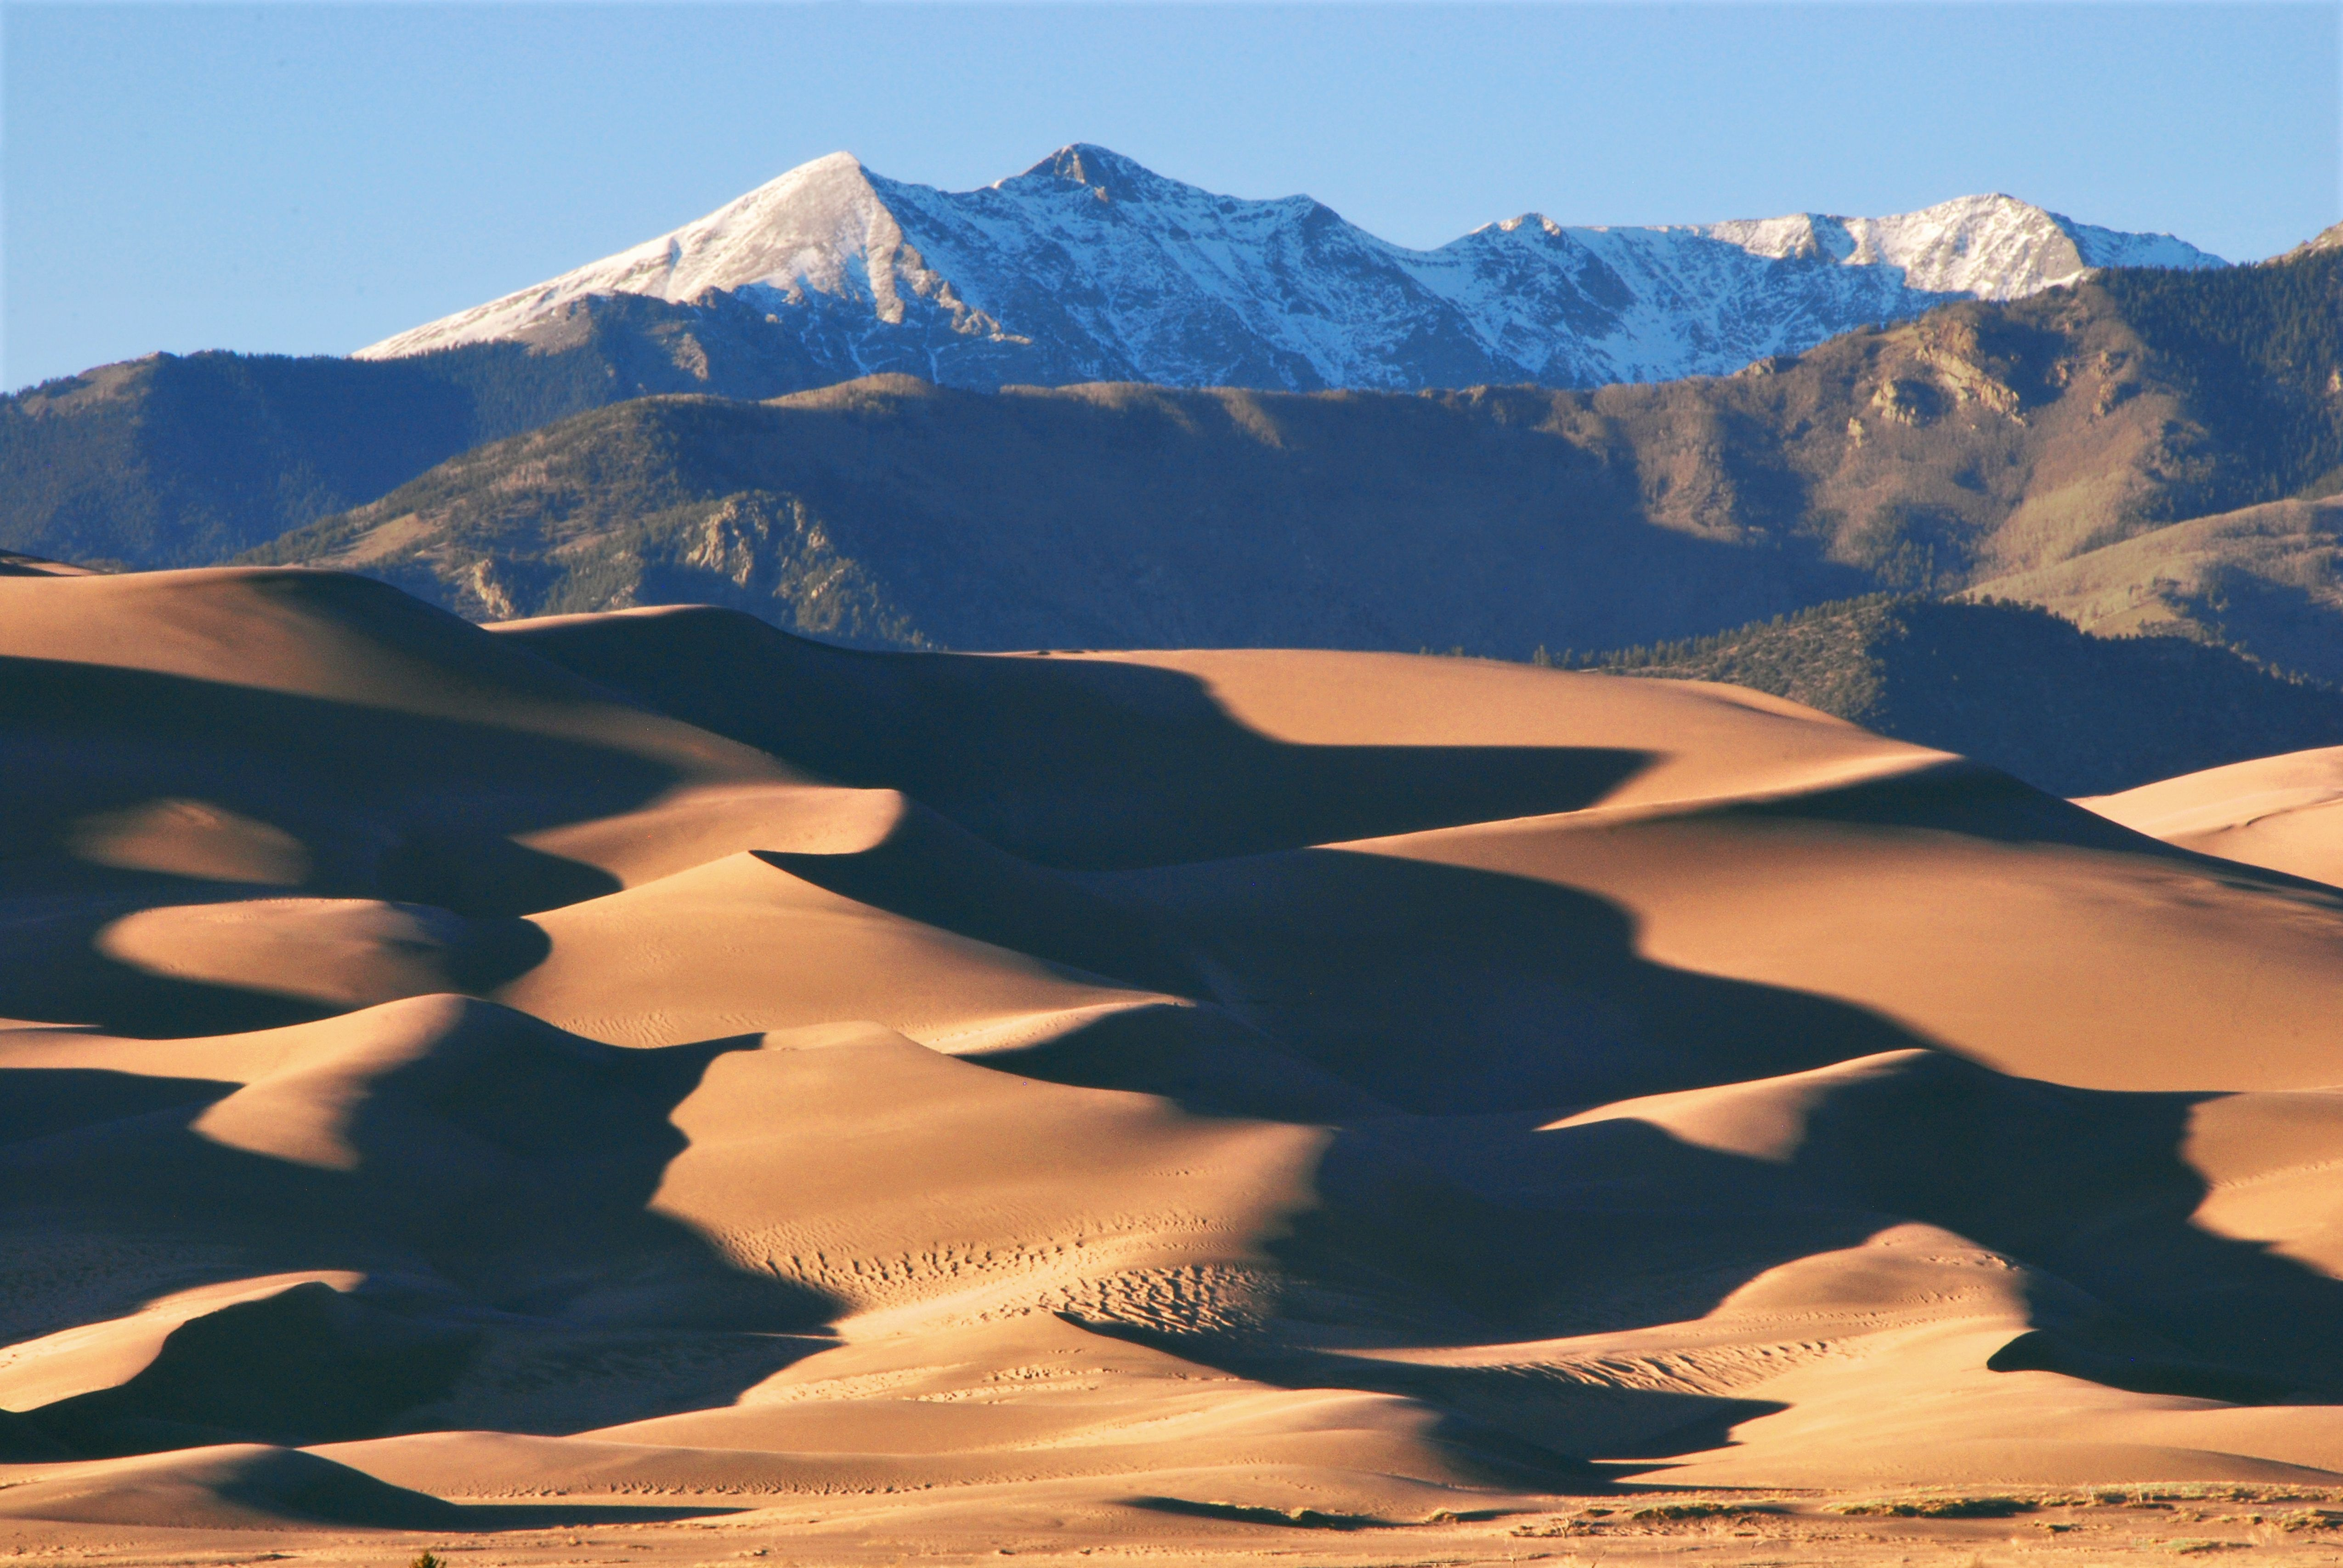 560862 5100x3414px Great Sand Dunes National Park, 9630.65 KB